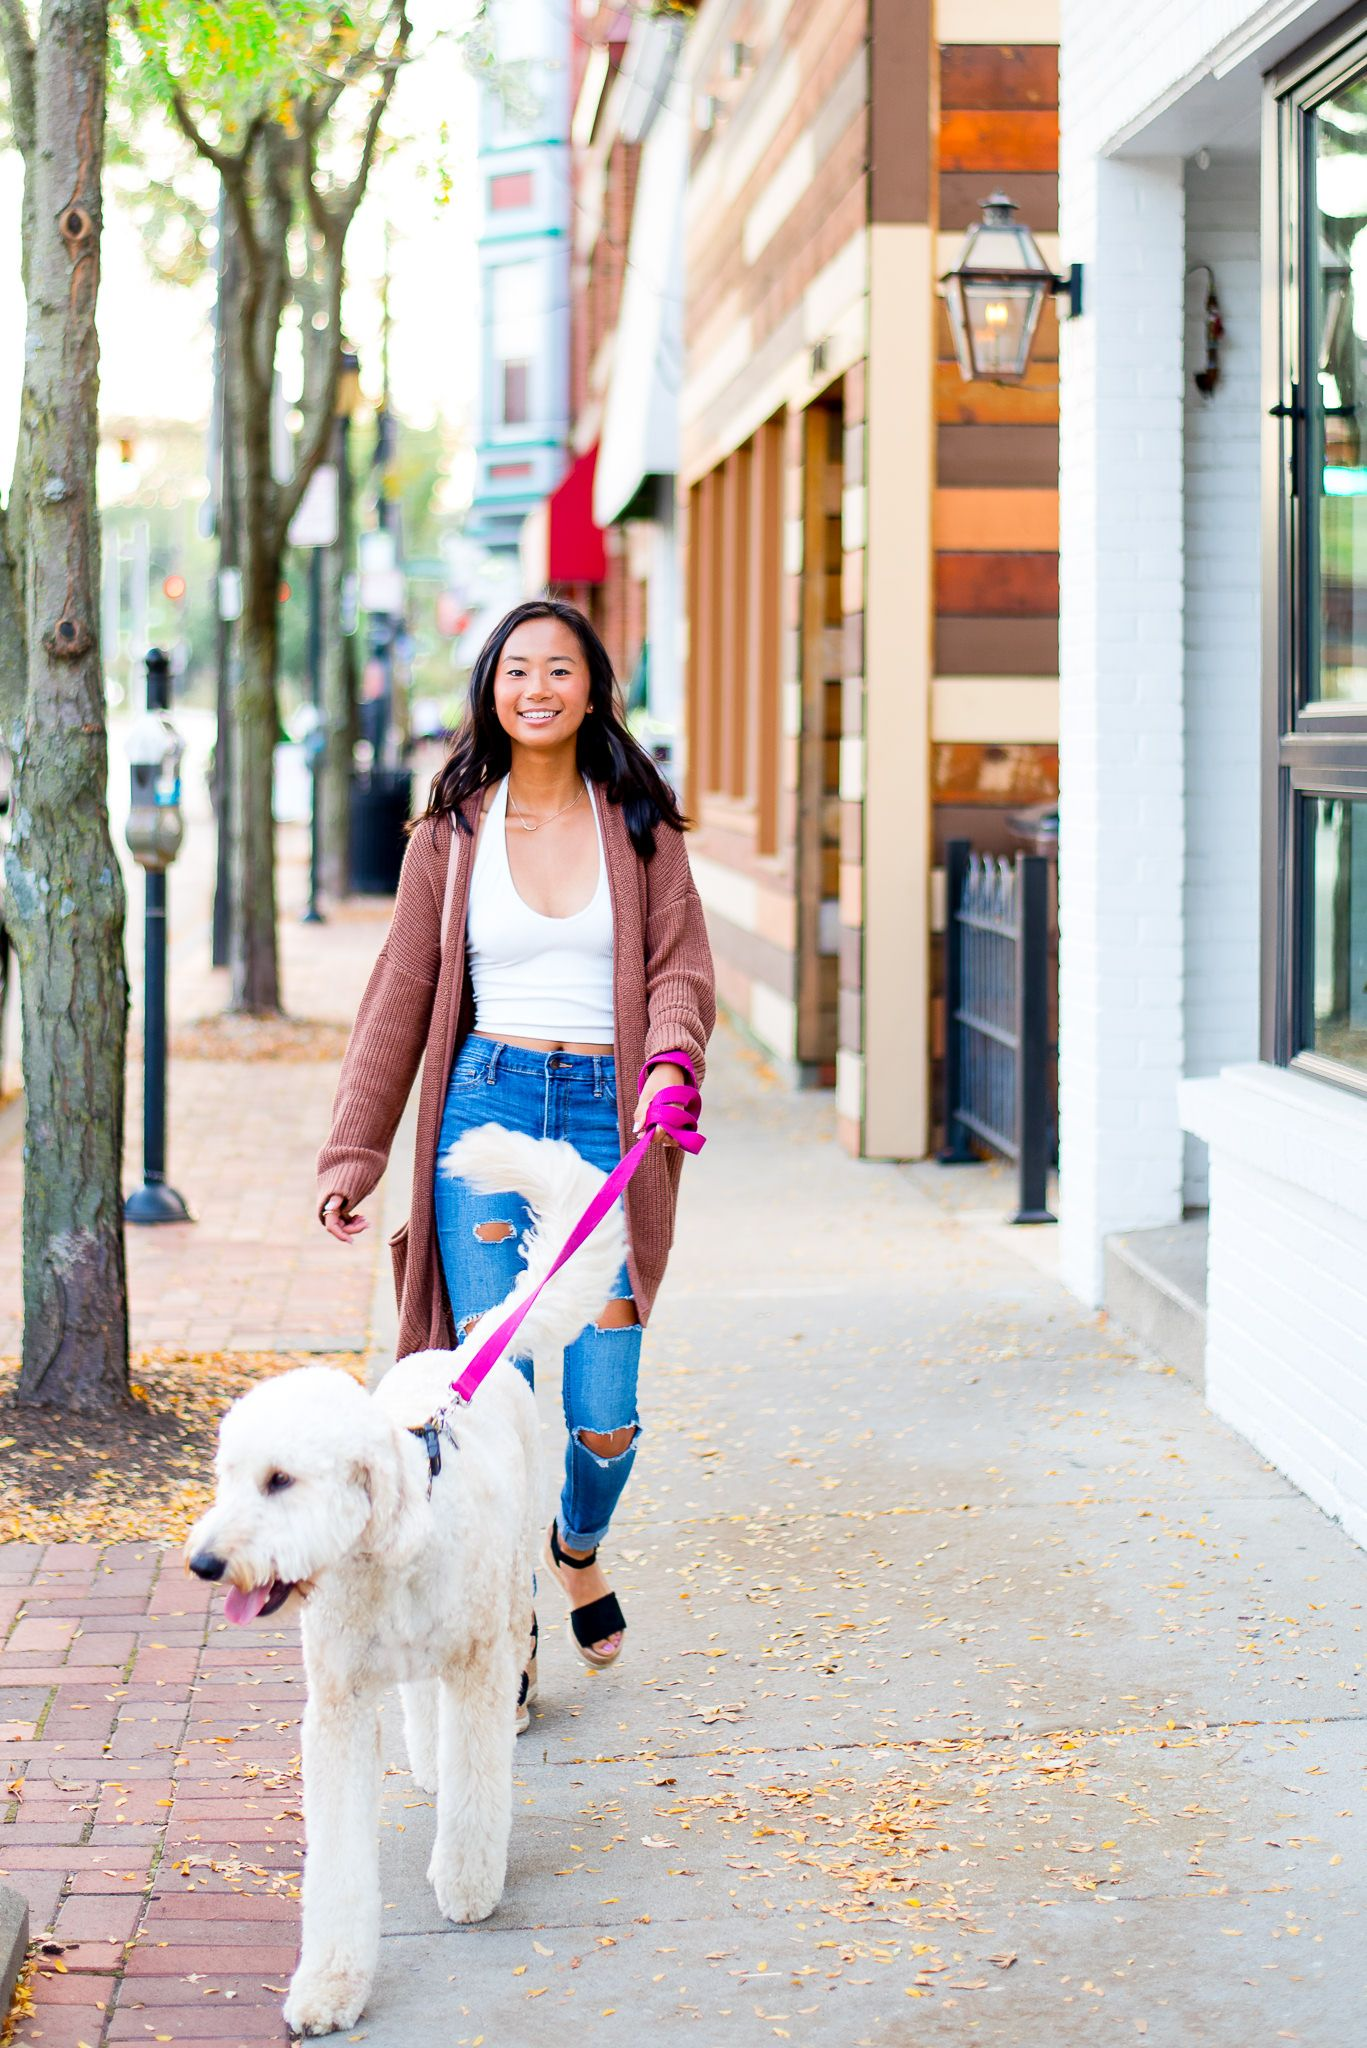 high school senior walking her dog near Bean and Barley in Cincinnati, OH